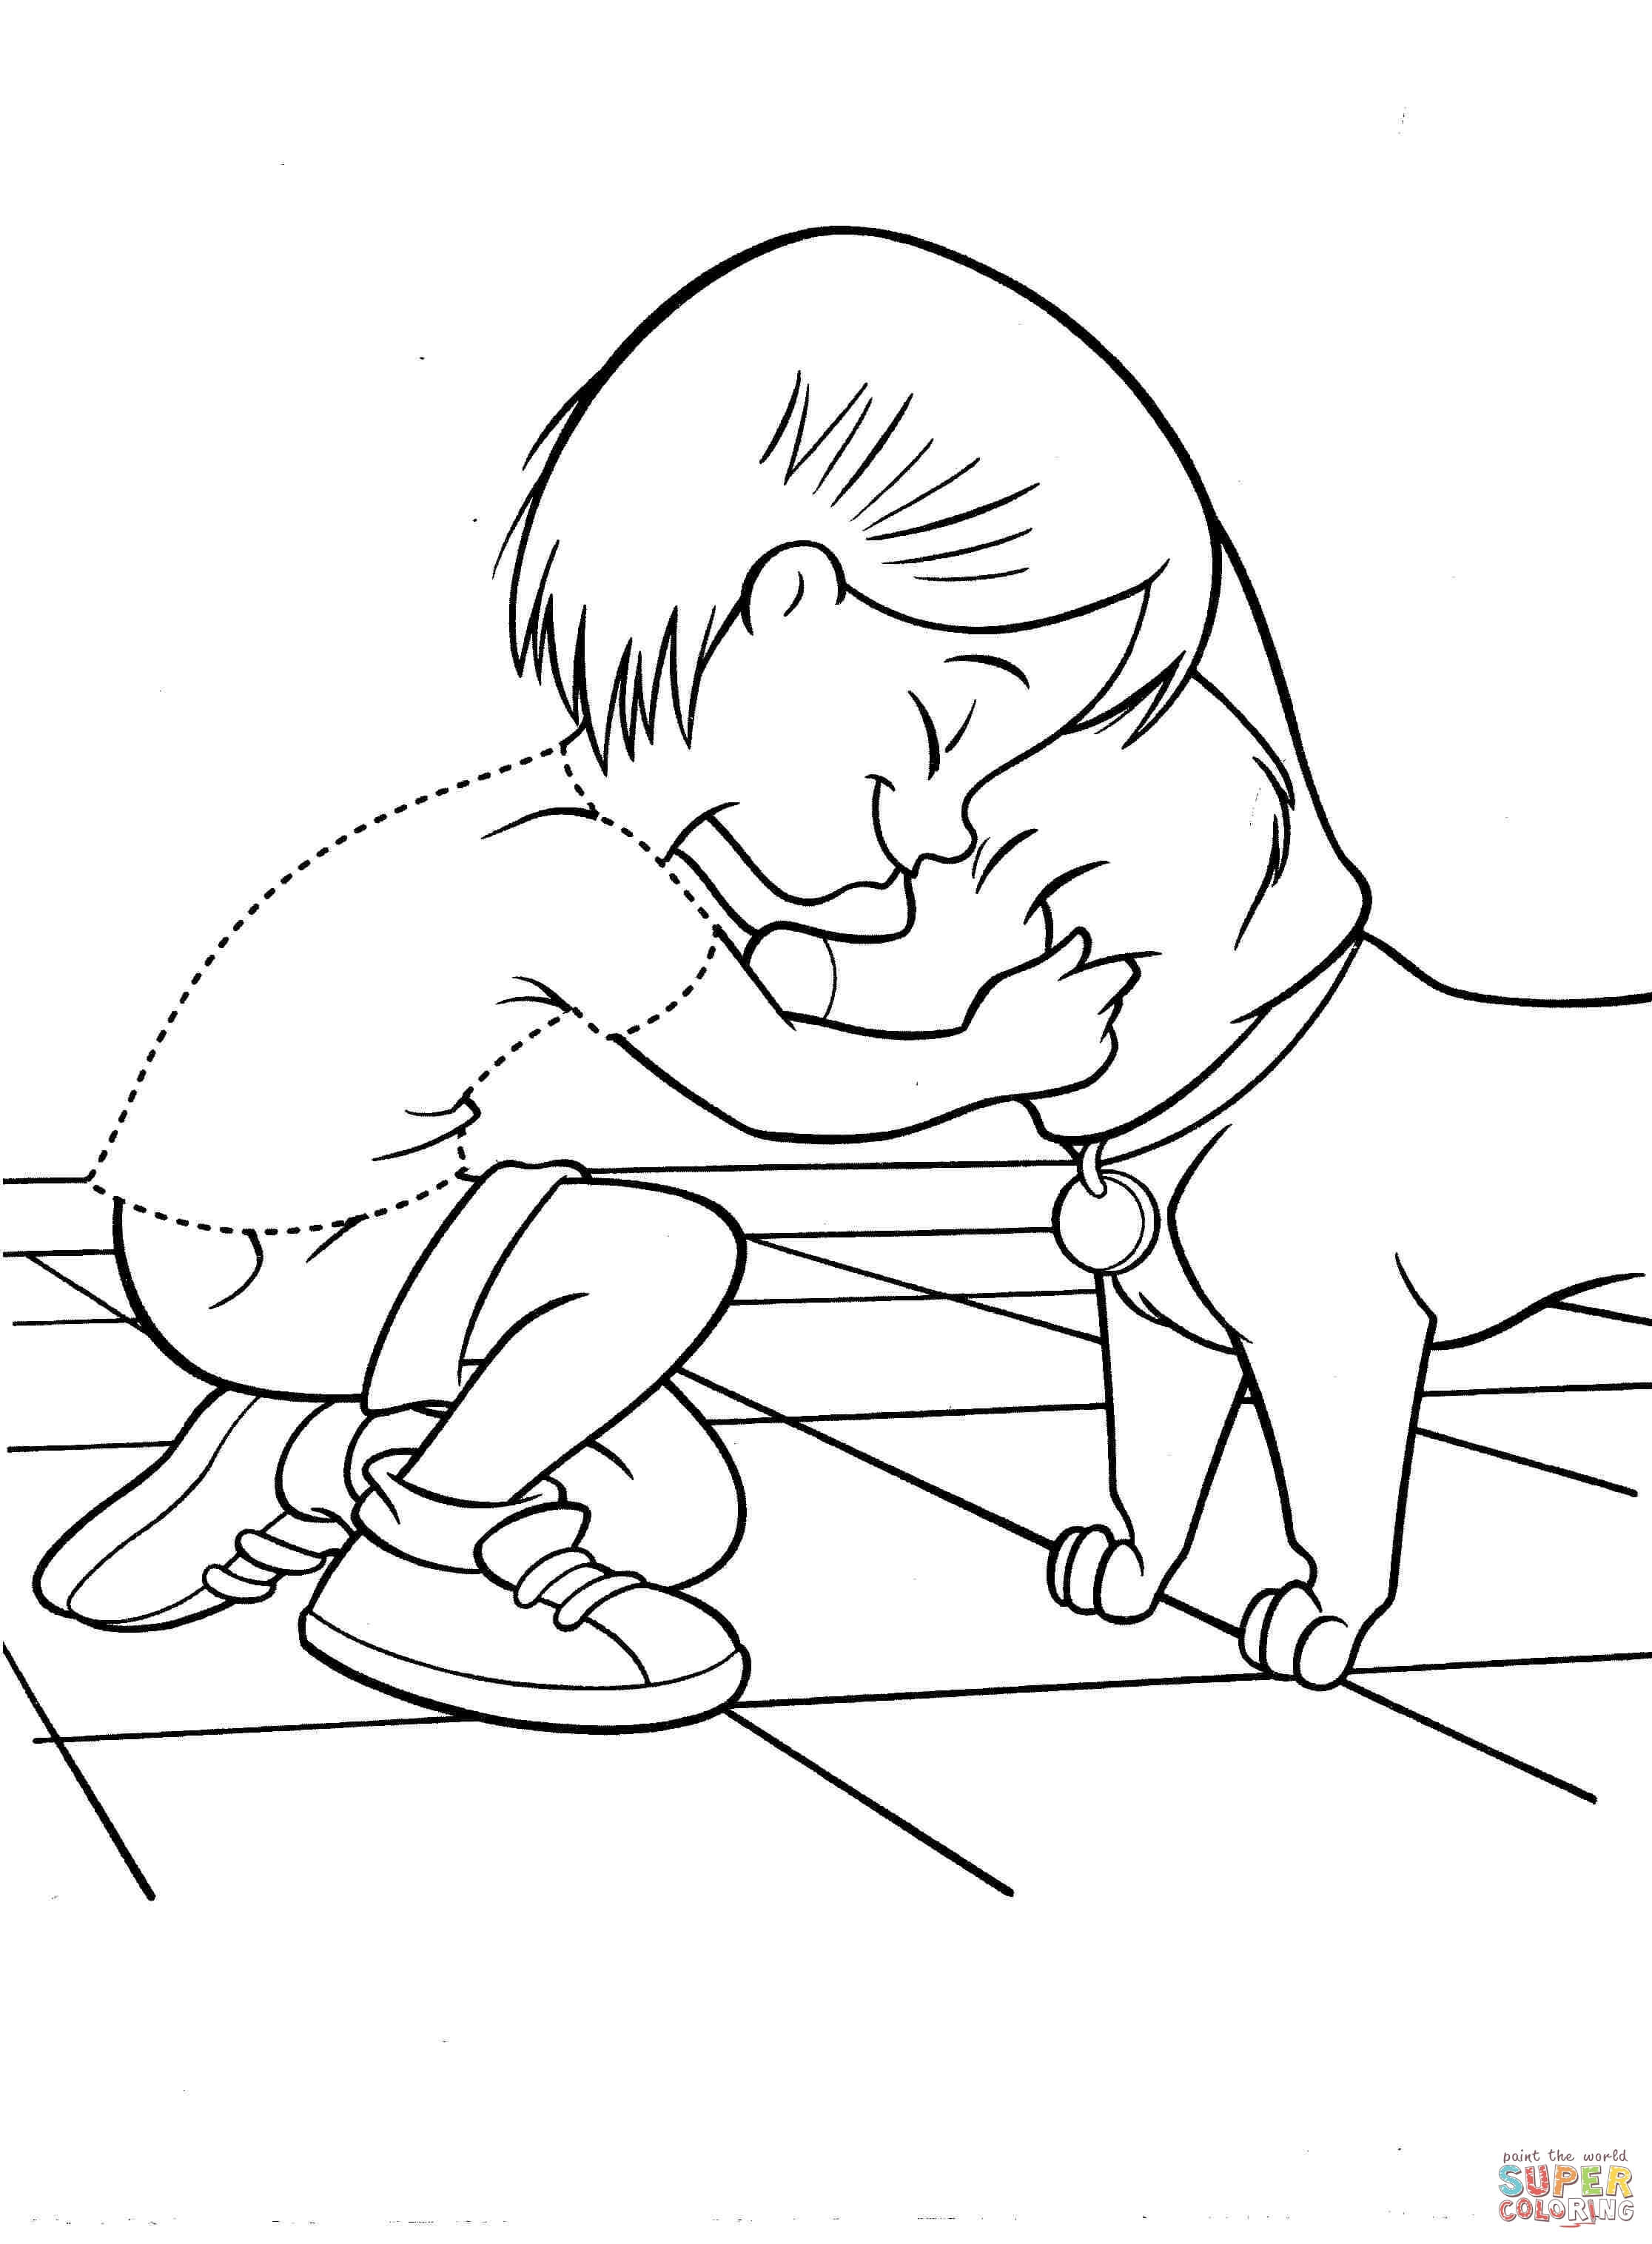 Penny With Dog Coloring Page